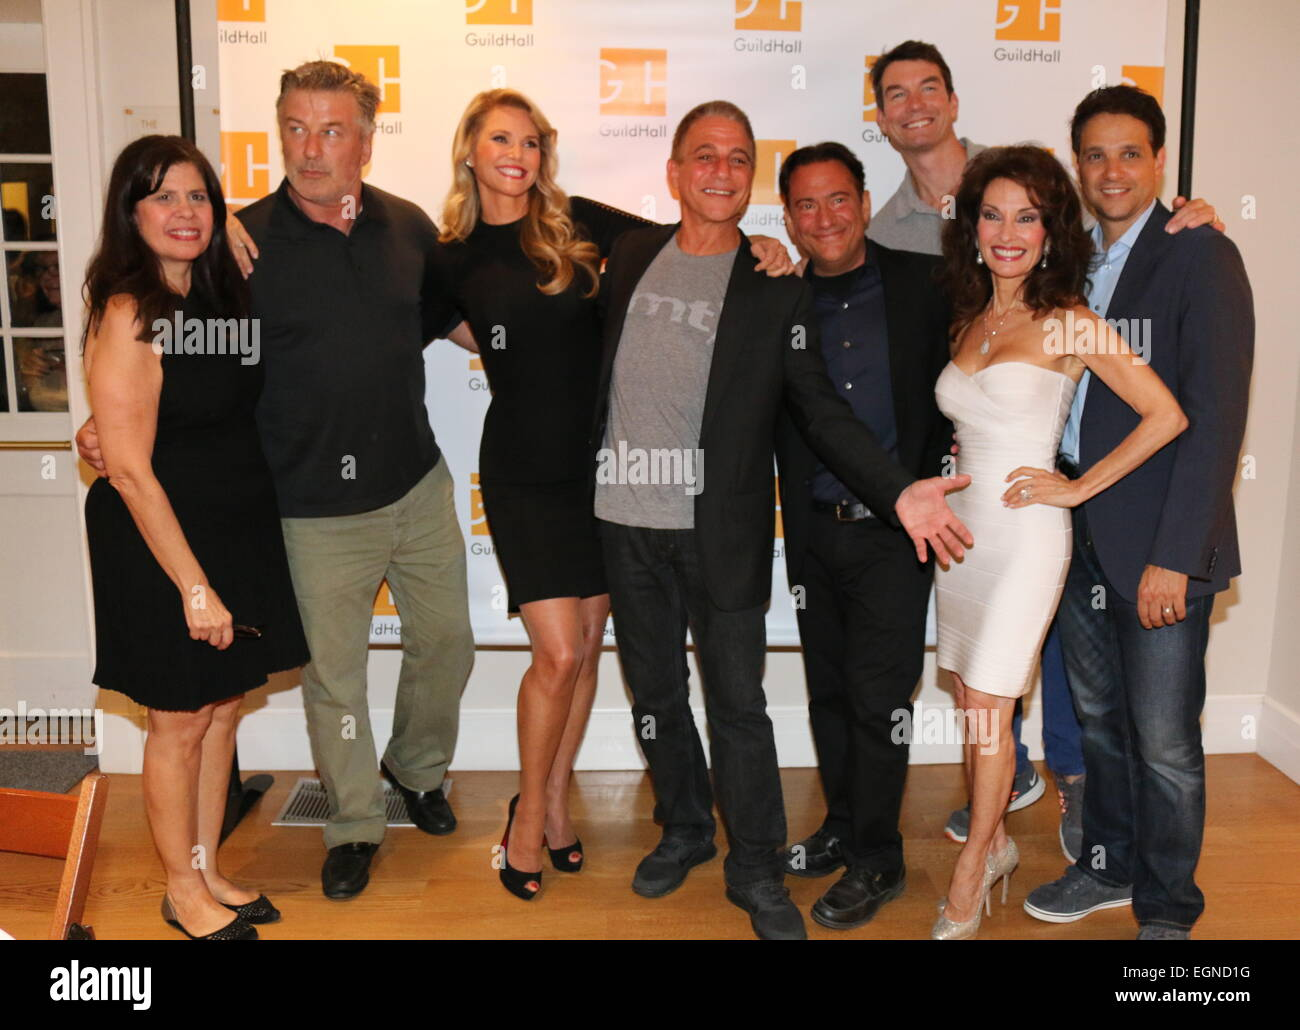 Celebrity Autobiography' at Guild Hall in East Hampton - Arrivals Featuring: Dayle Reyfel,Alec Baldwin,Christie - Stock Image